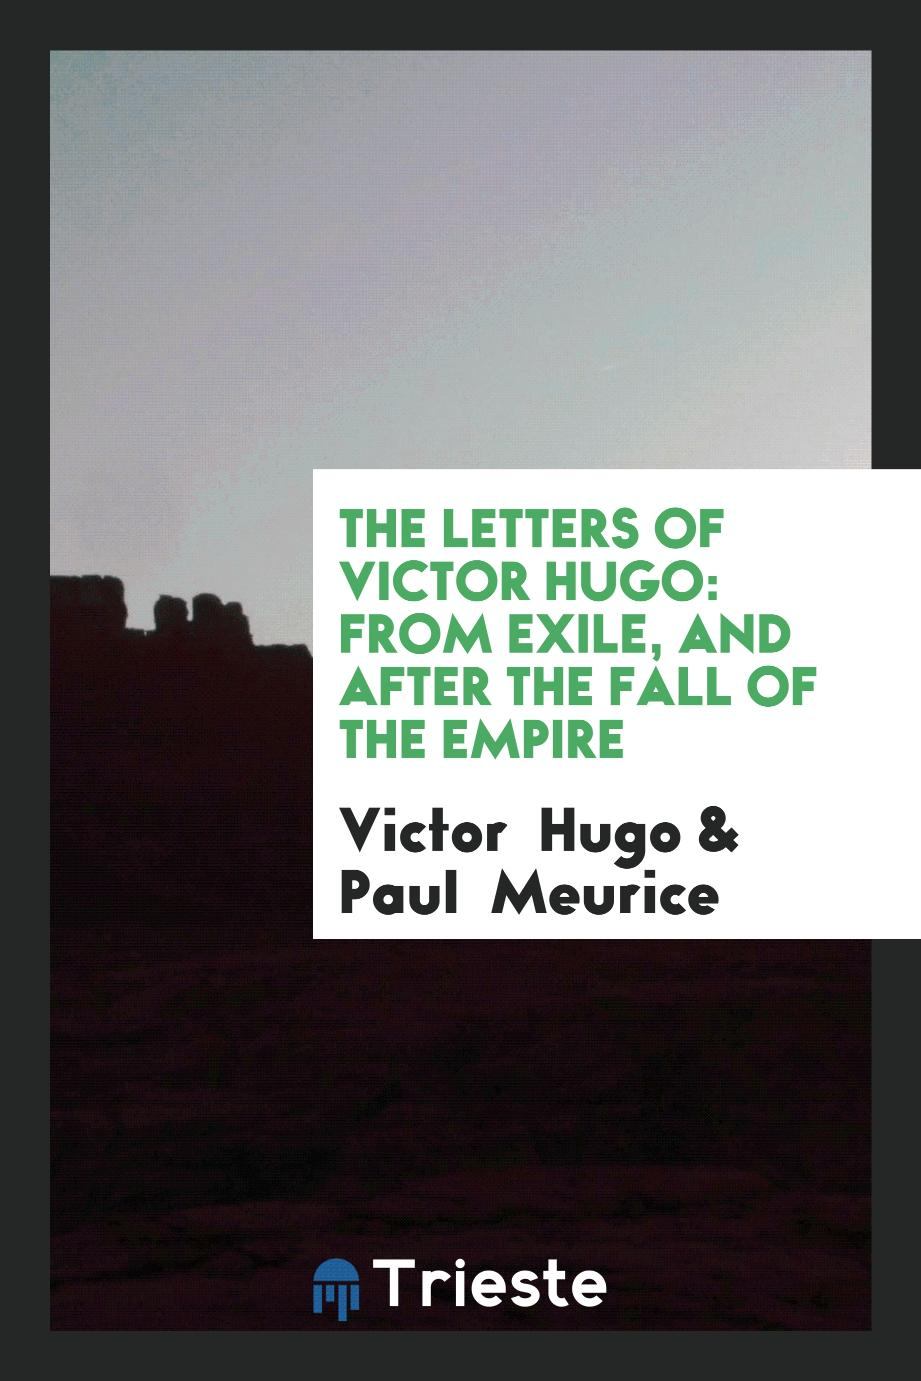 The Letters of Victor Hugo: From Exile, and after the Fall of the Empire